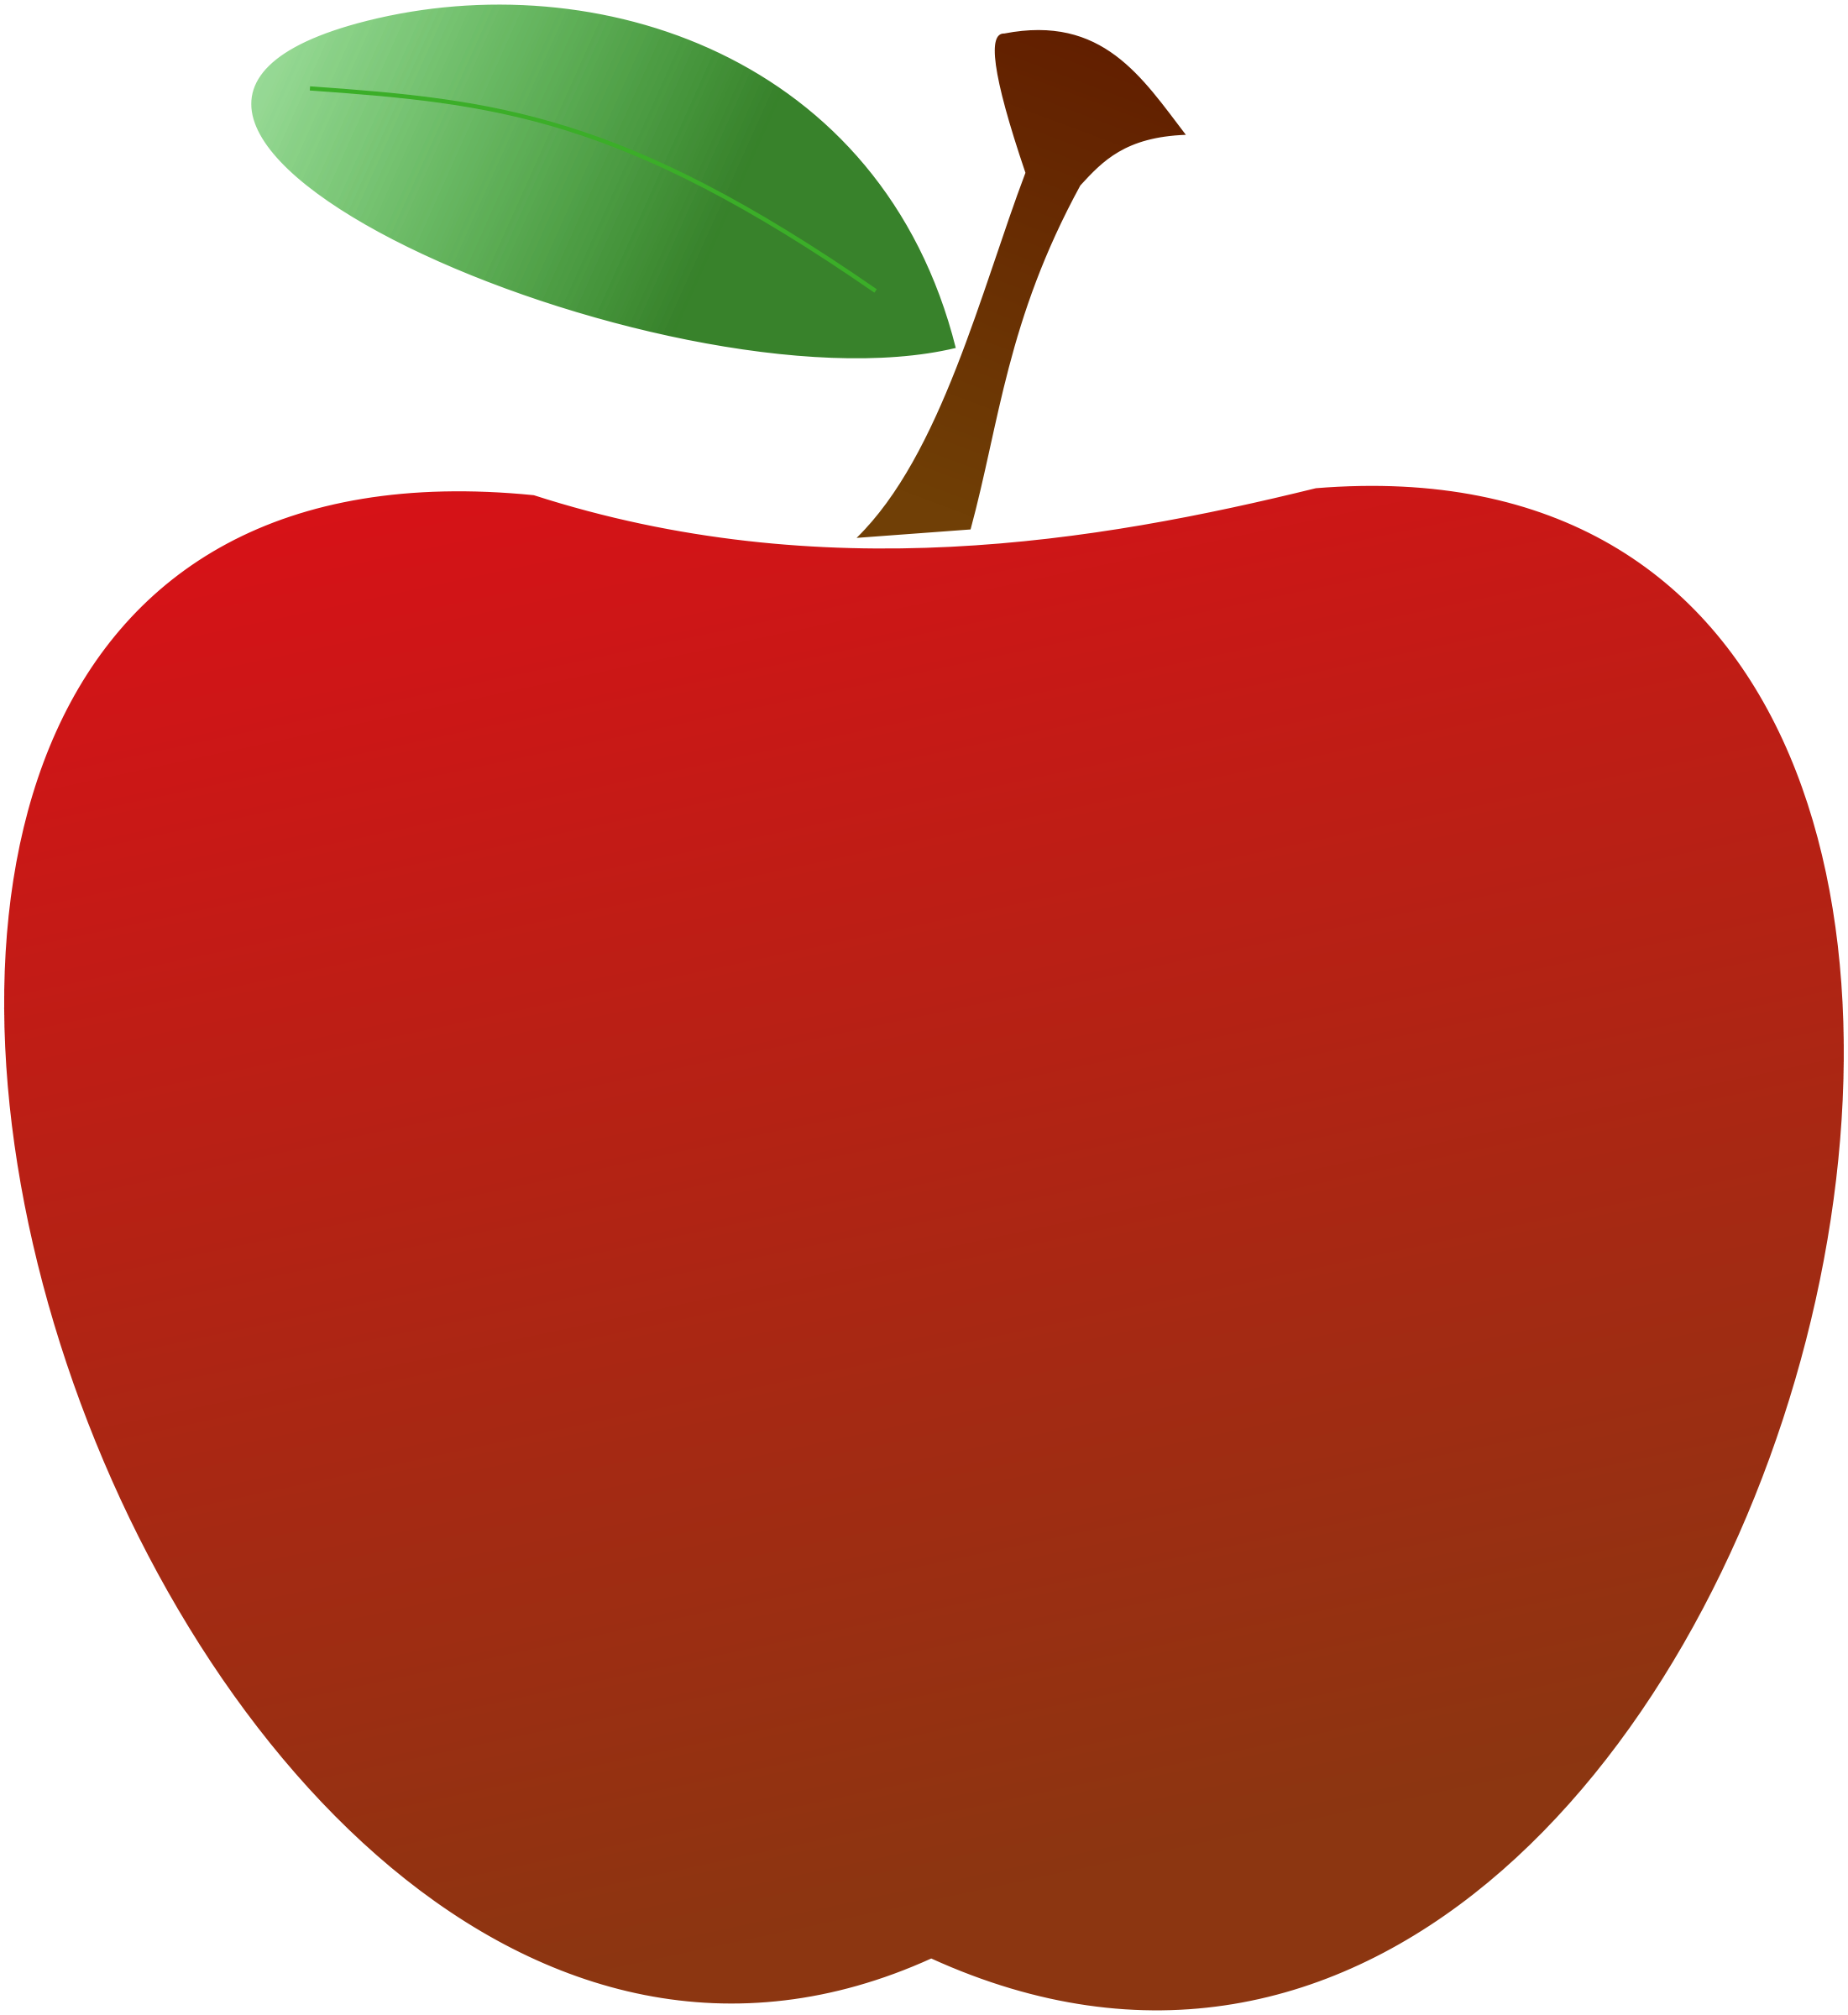 Teacher apple panda images. Free clipart for commercial use open half appl